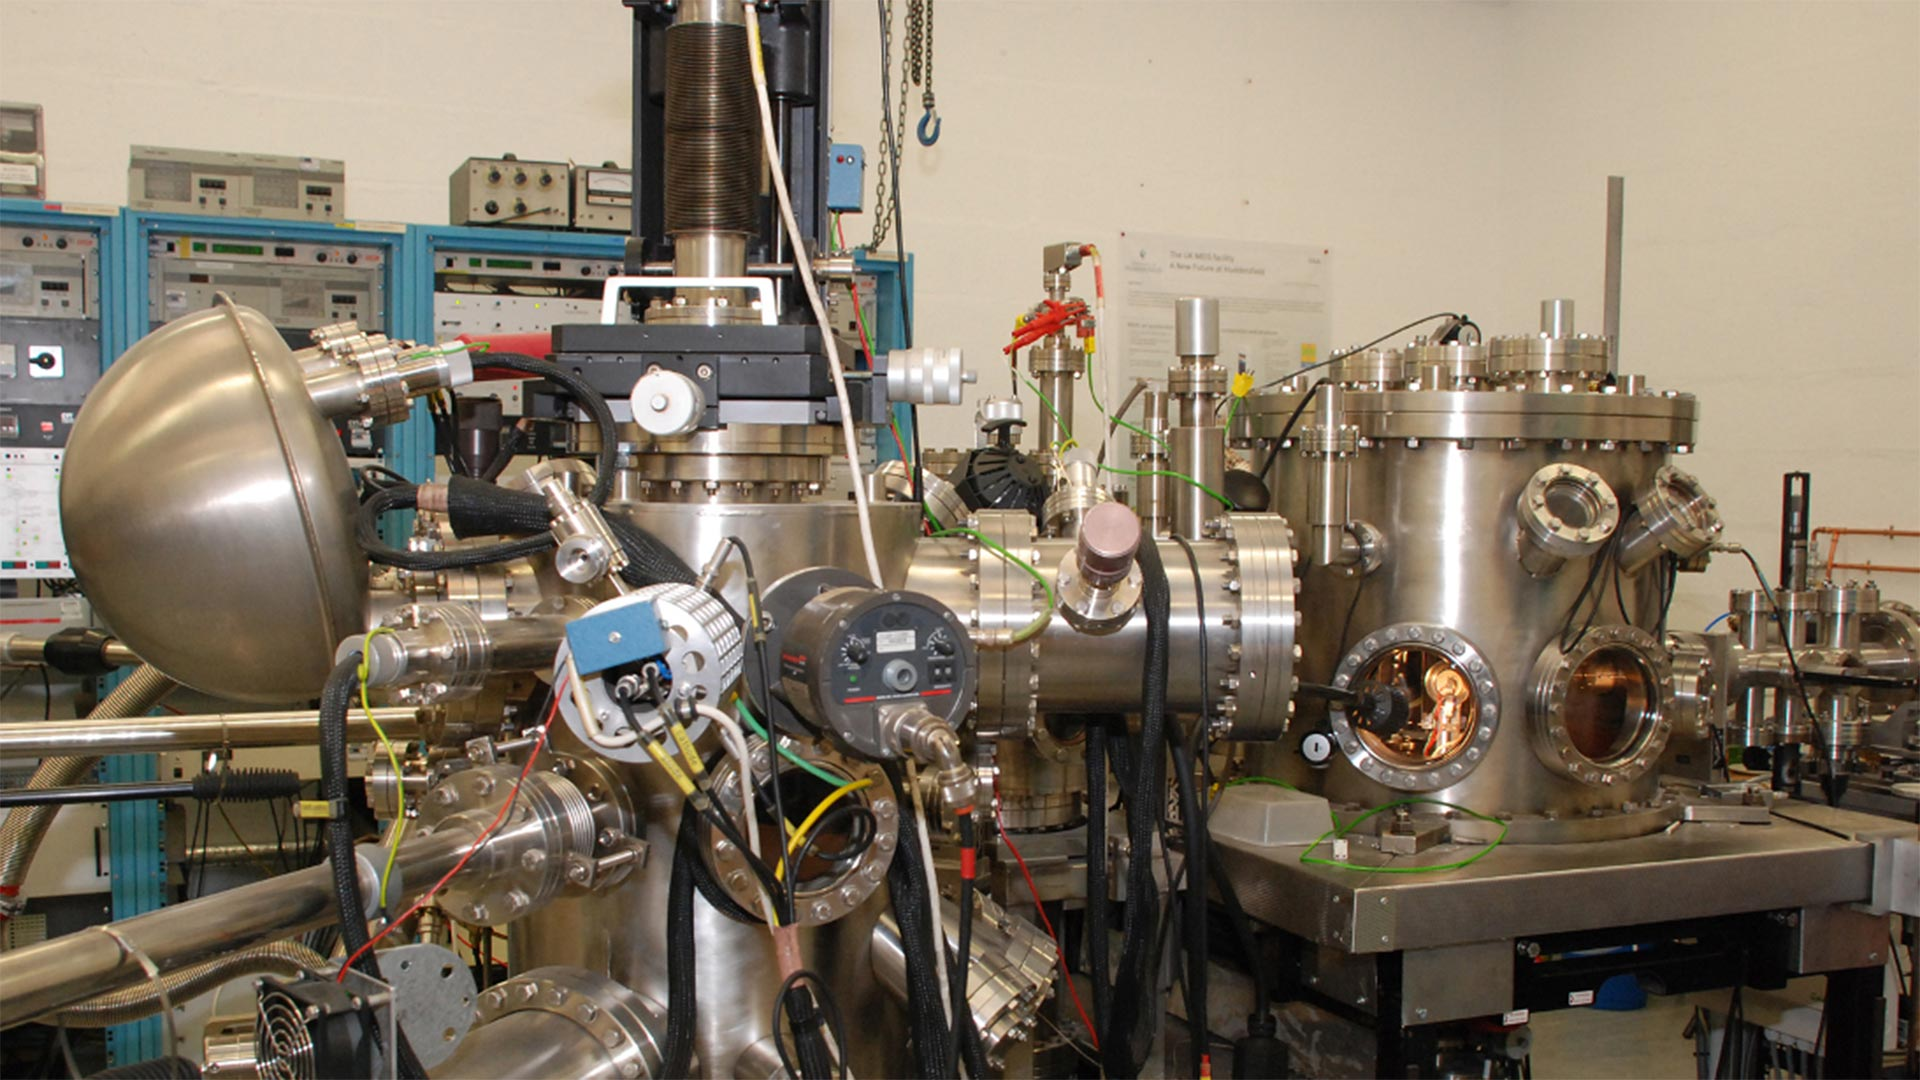 The MEIS accelerator at the Ion Beam Centre. Image via University of Huddersfield.